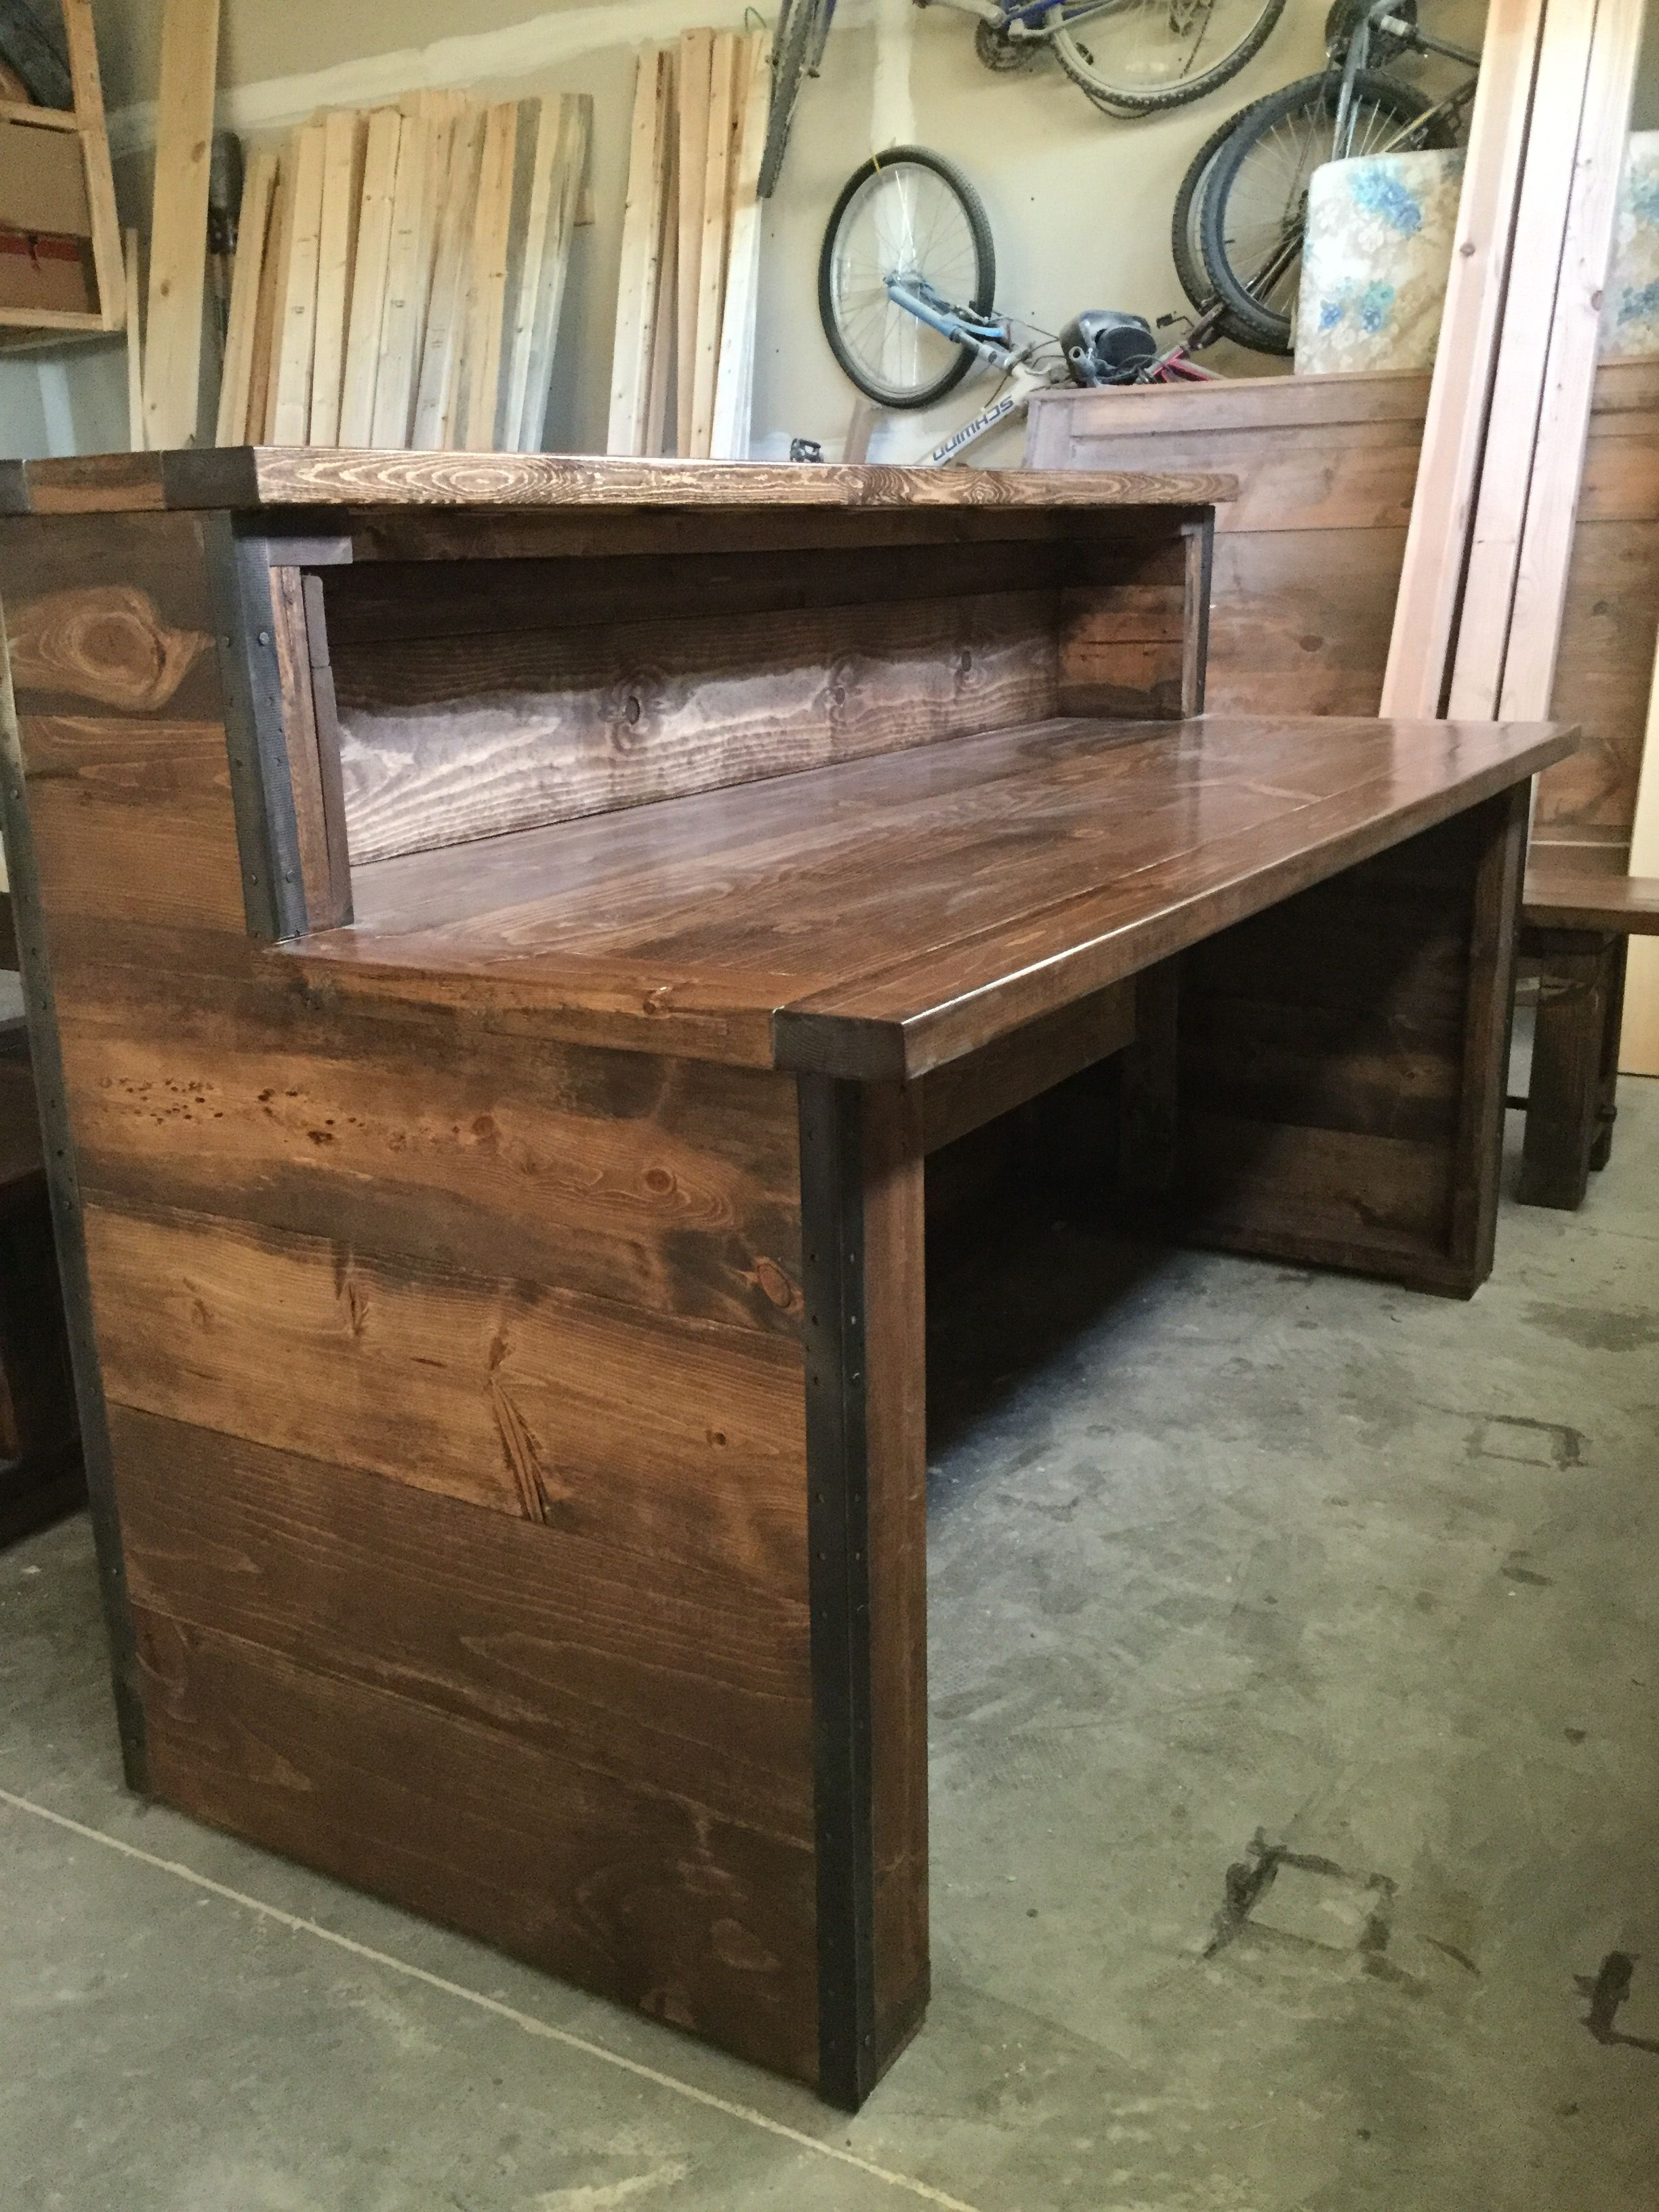 Rustic industrial reception desk with two tiers frazer for Industrial rustic design furniture